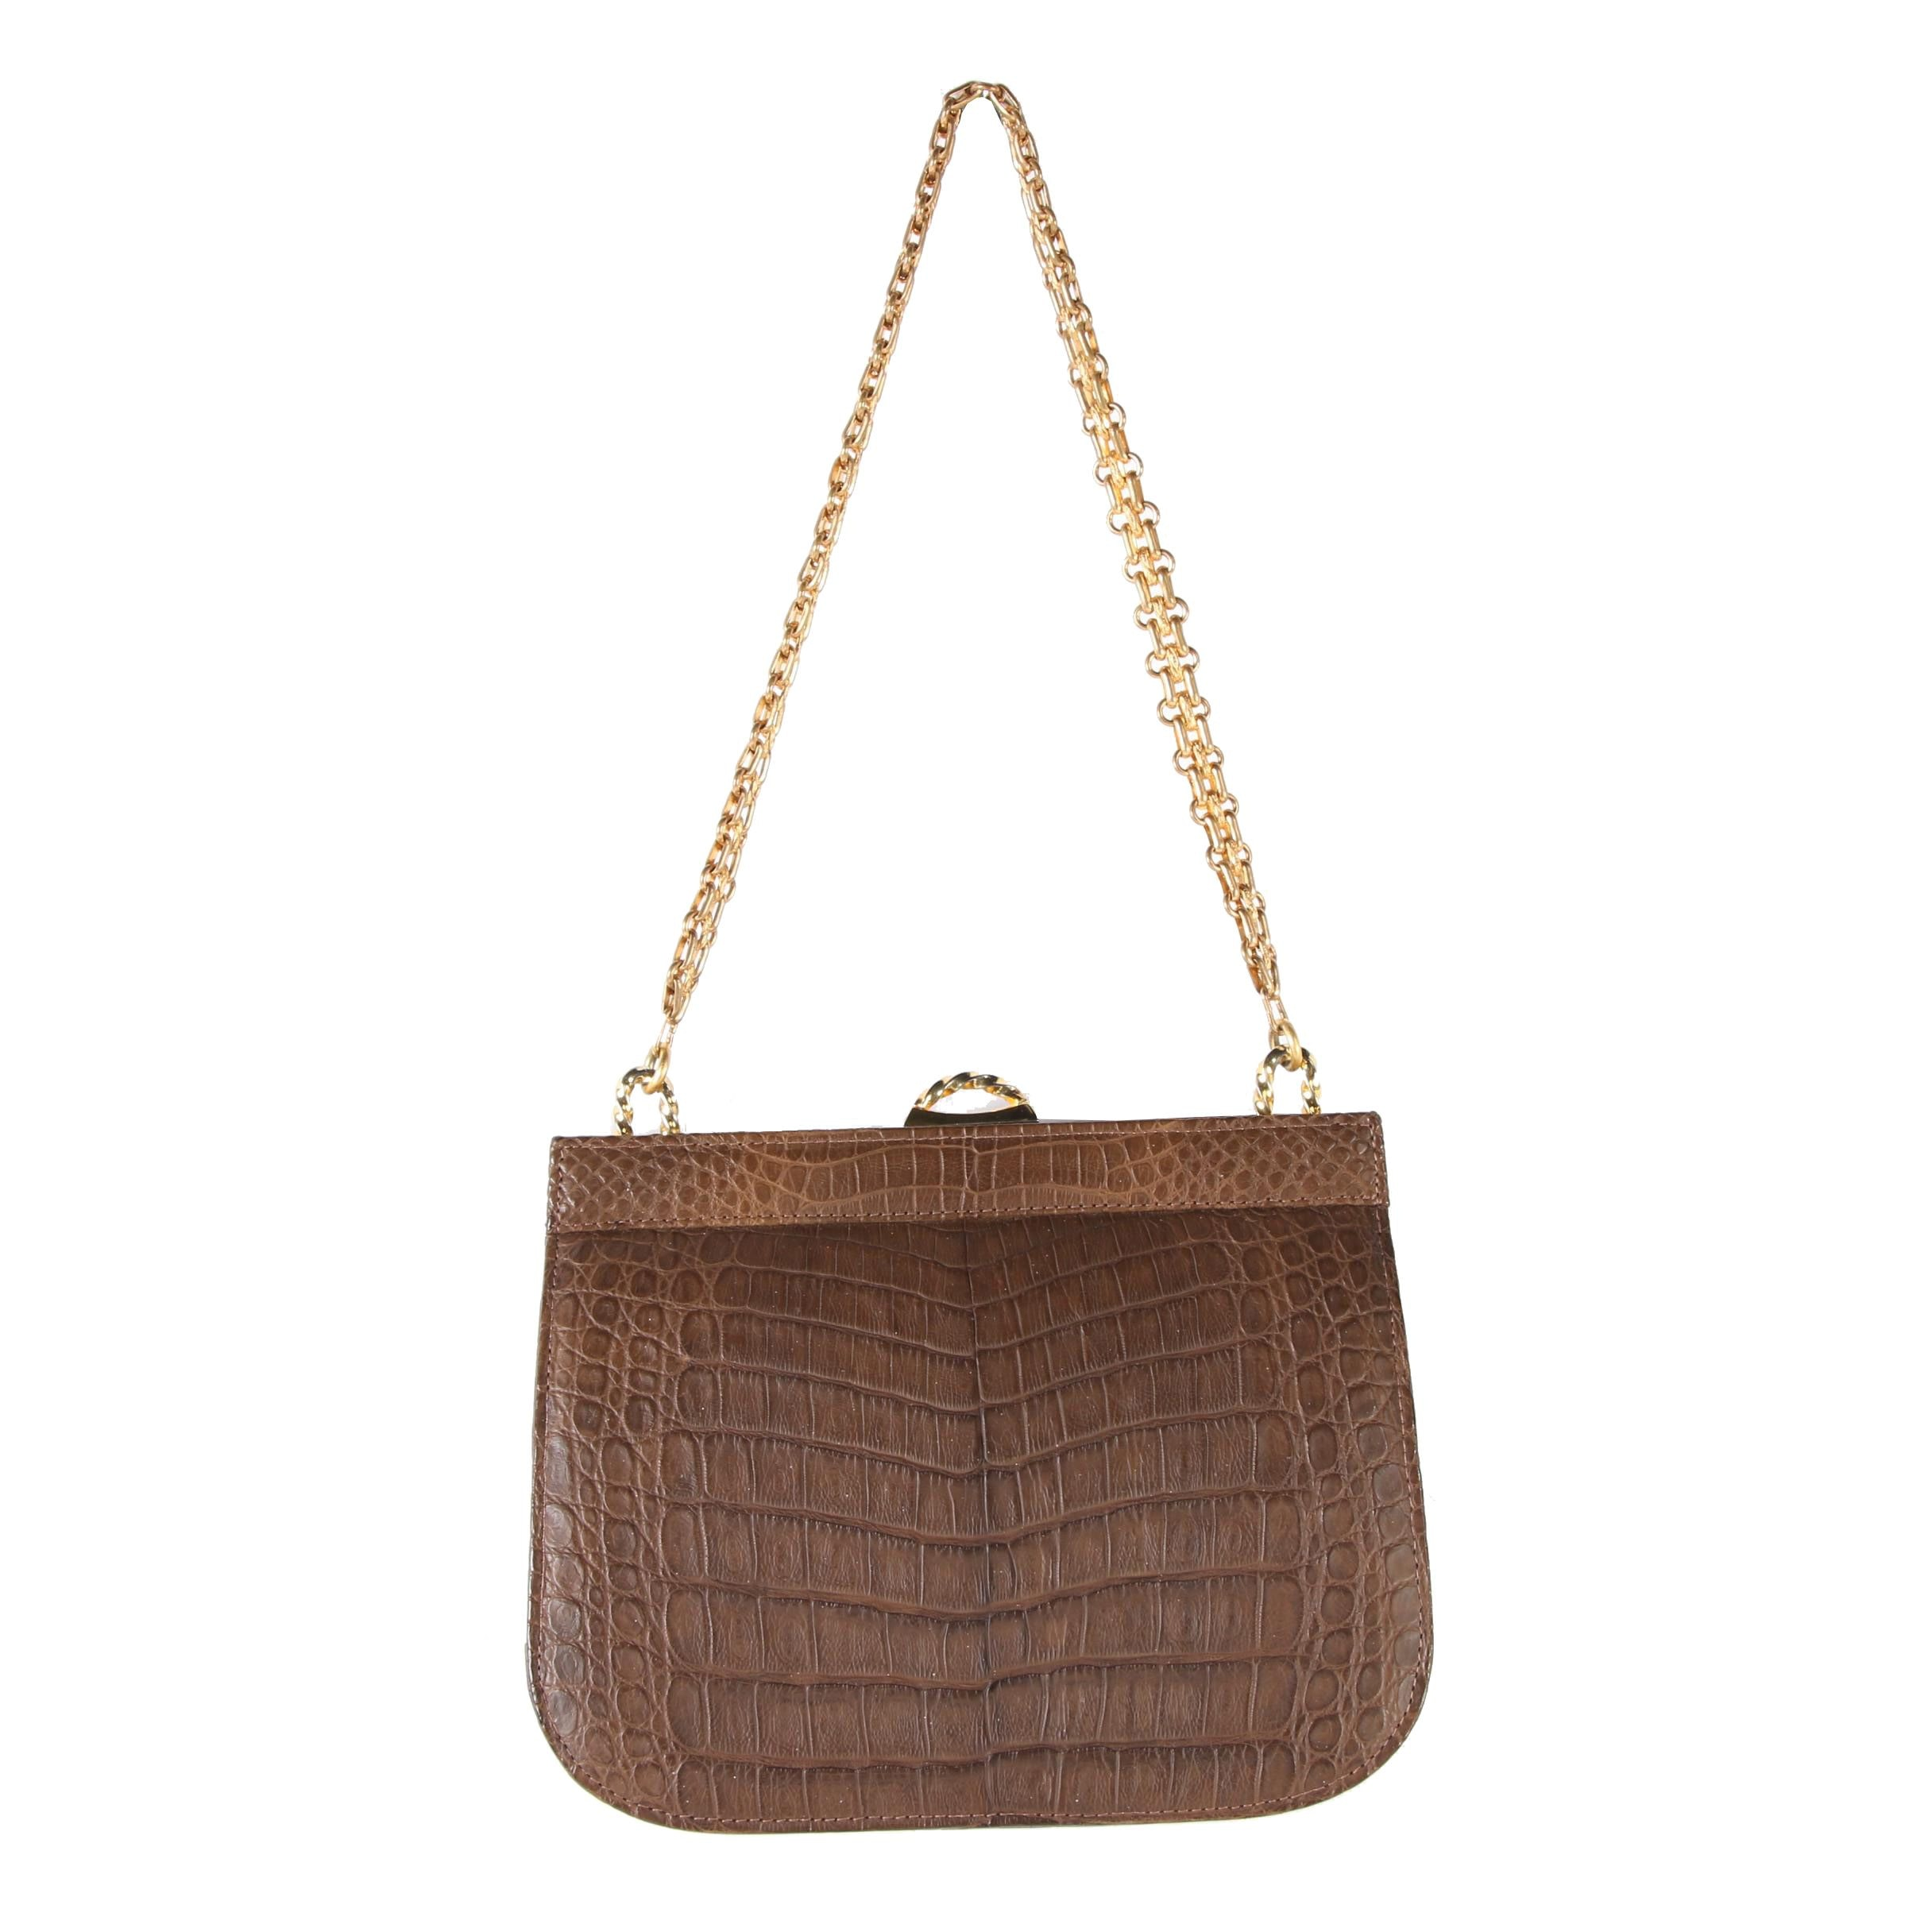 Sacha for Saks Fifth Avenue Crocodile Bag, Made in France, Late 1960's